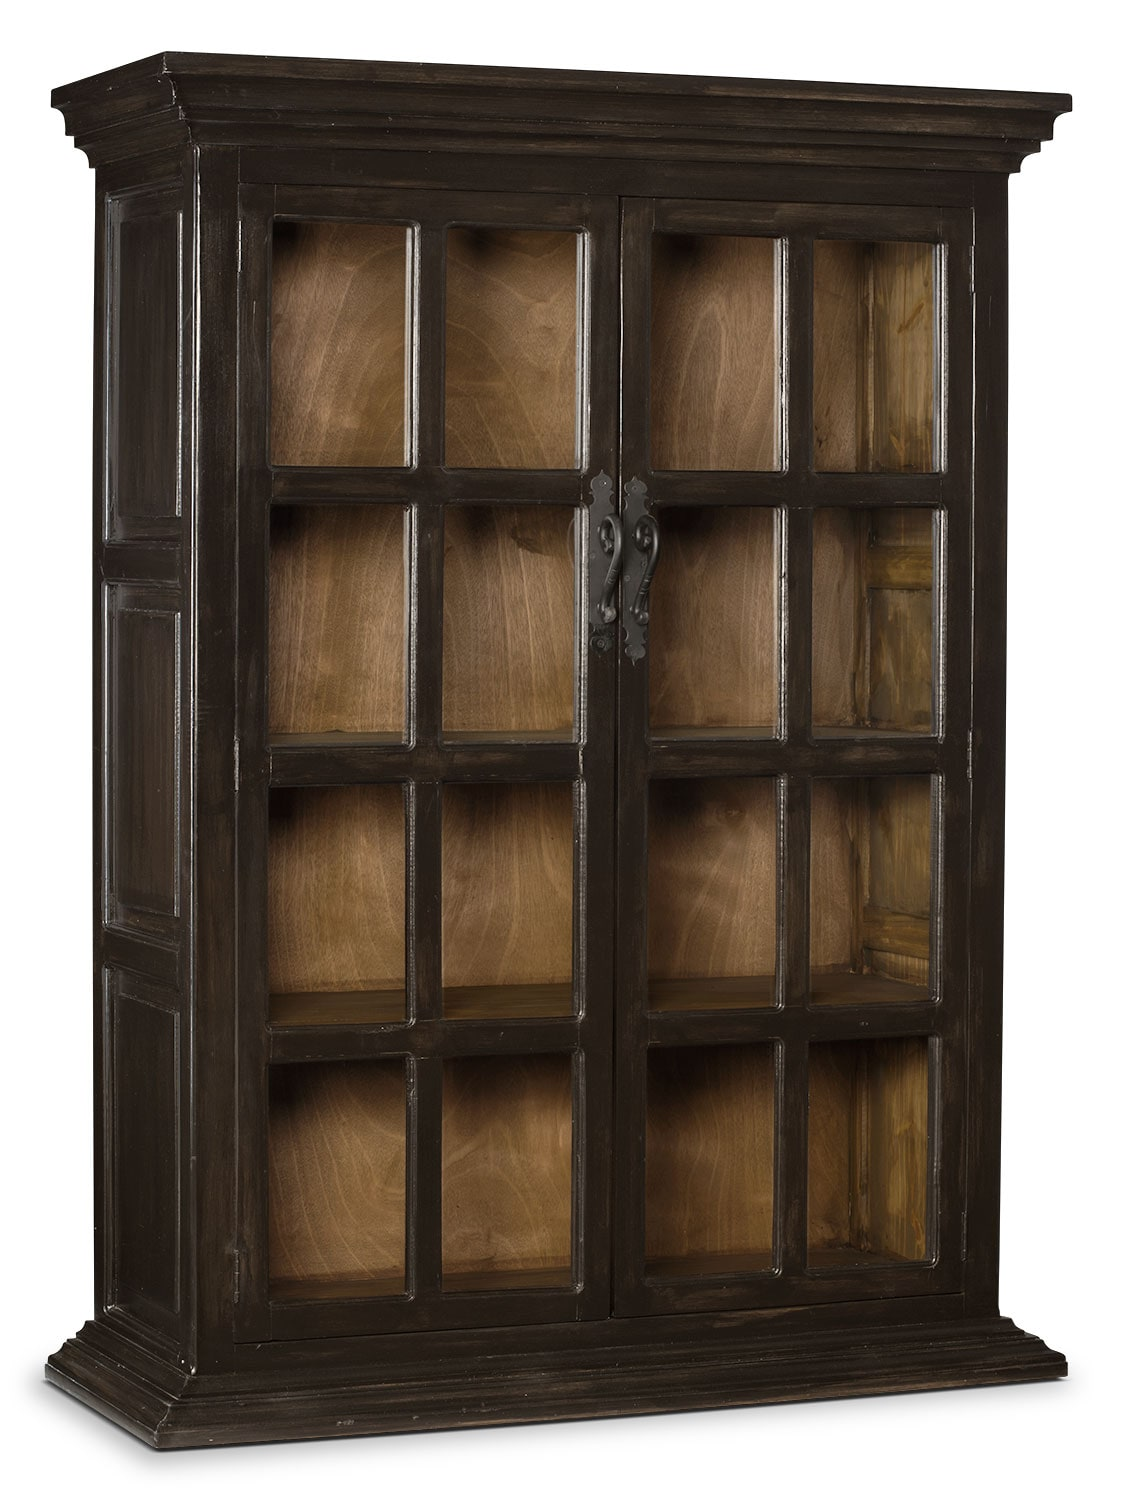 Artesia Display Cabinet